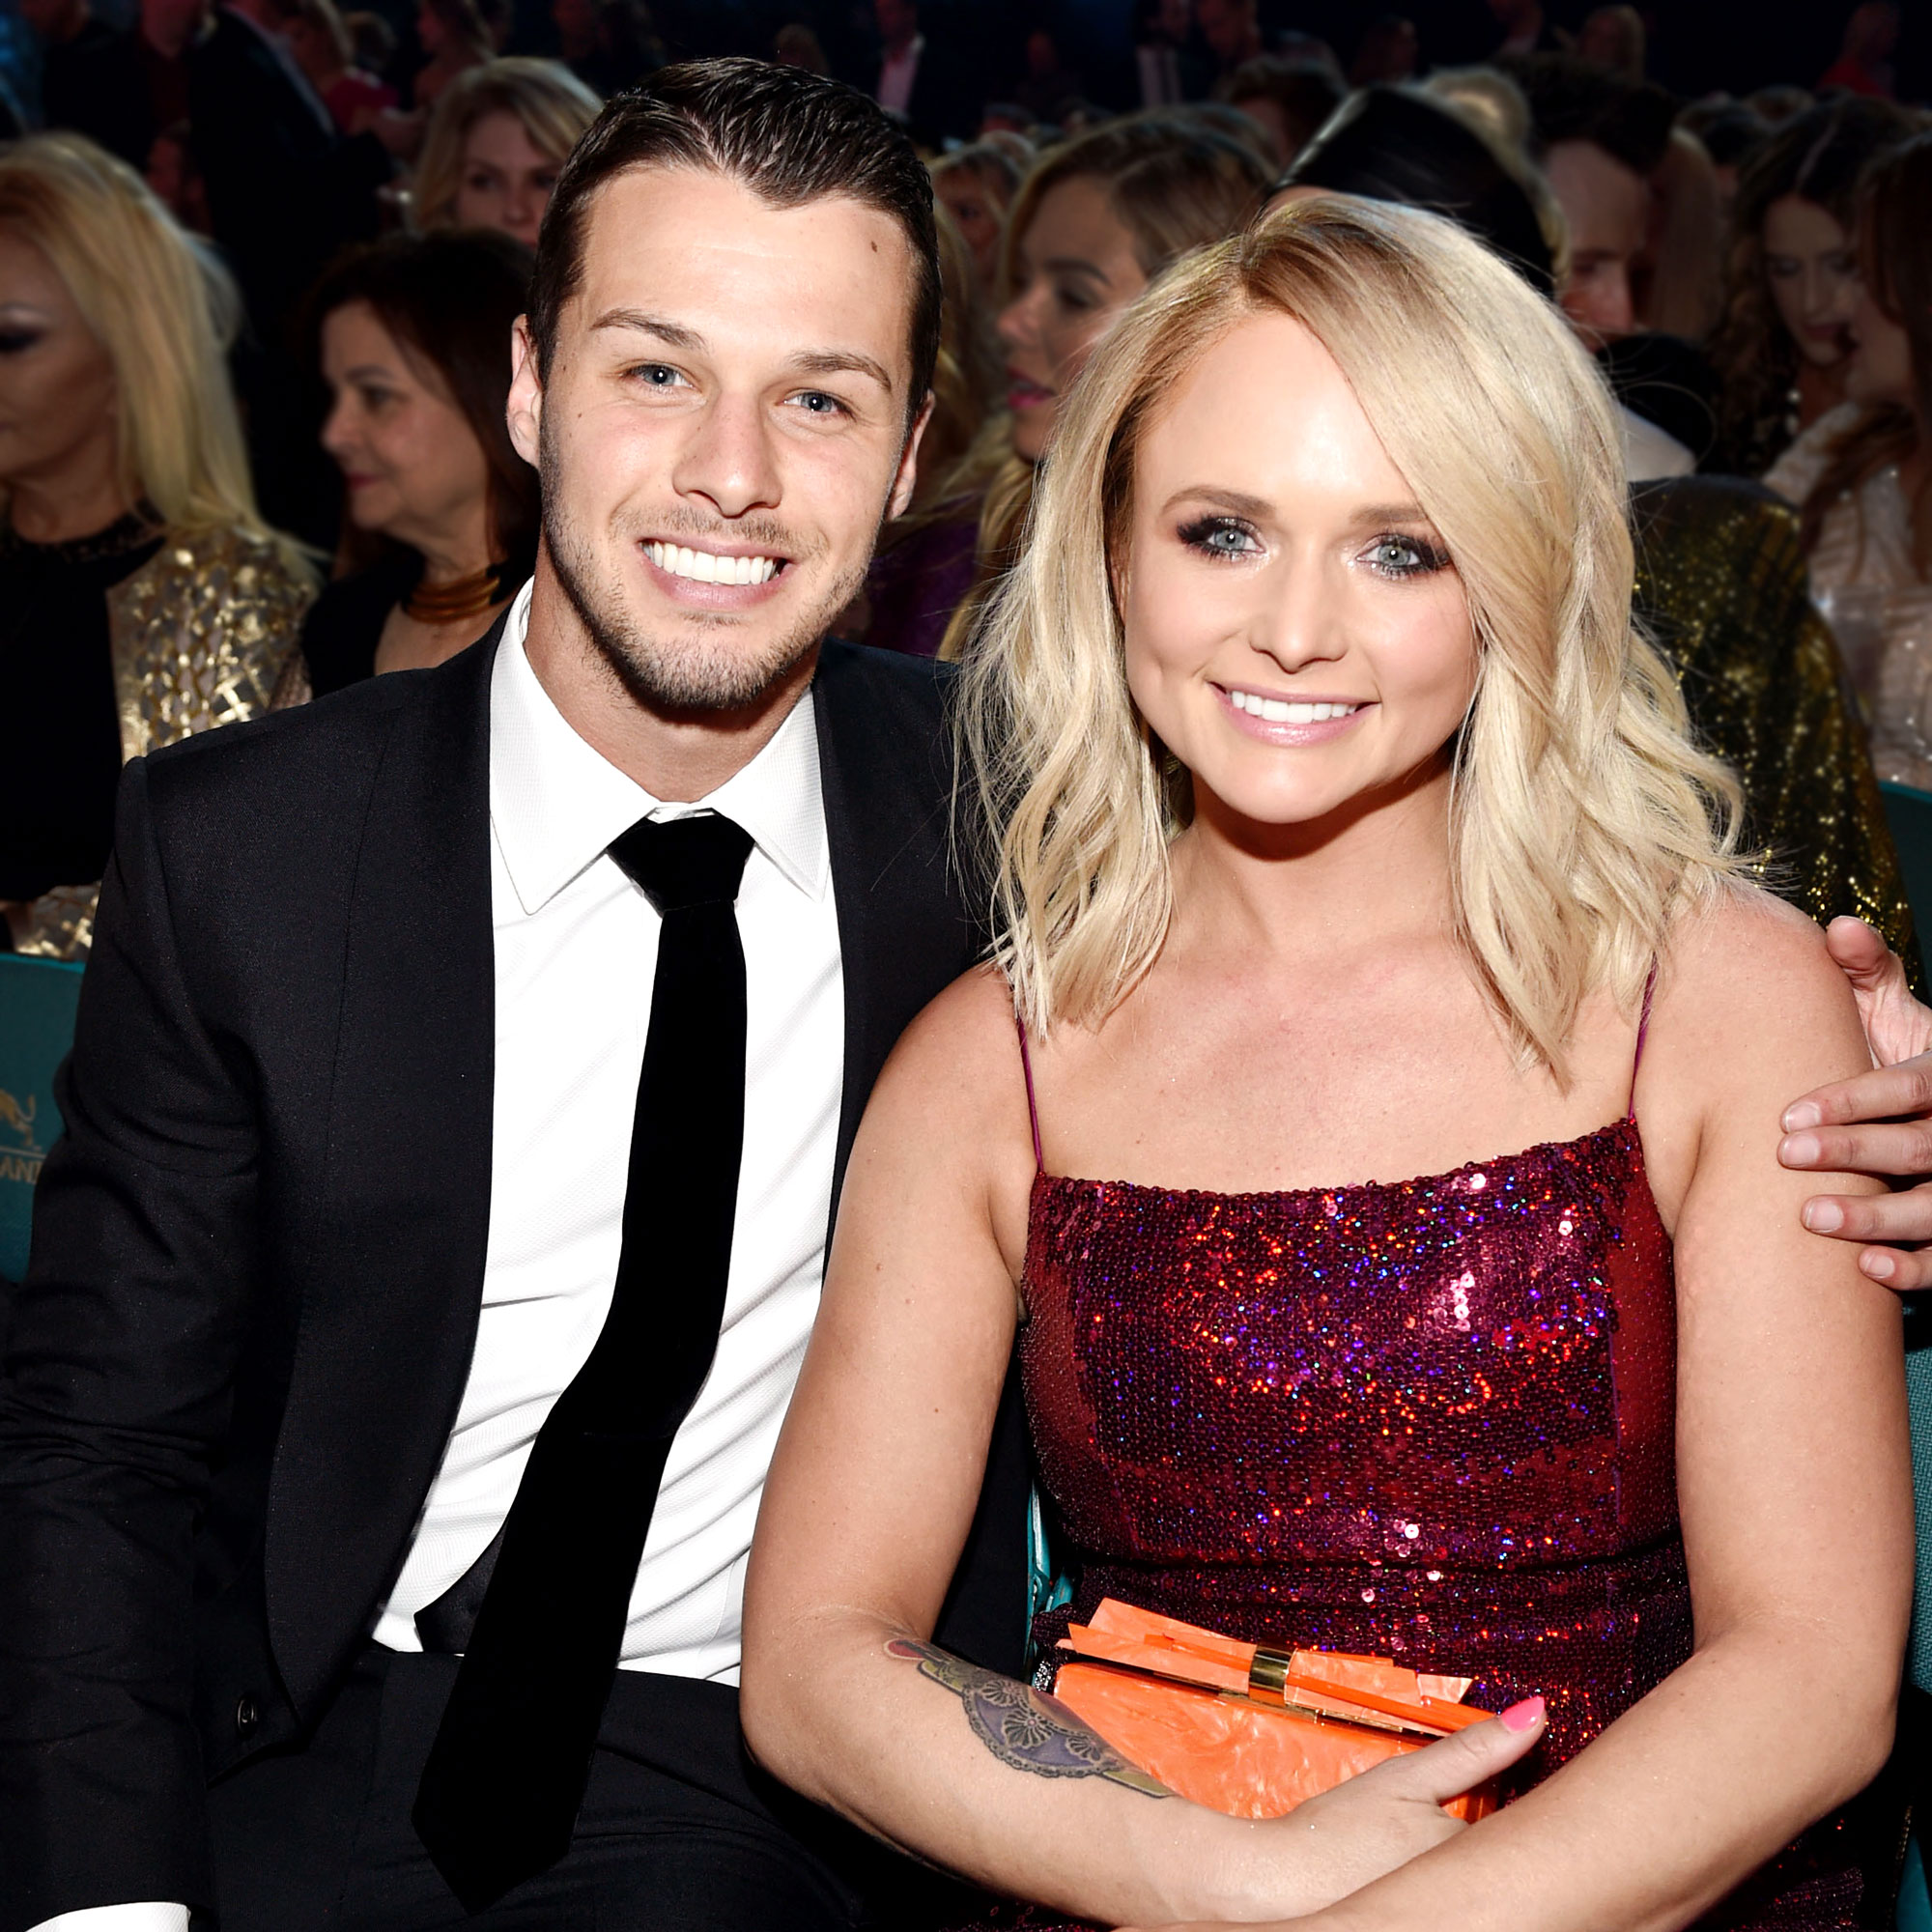 Miranda Lambert Jokes About Marrying Brendan McLoughlin and Doing 'Weird S--t' When She Has Time Off Academy Of Country Music Awards Black Suit and Sparkly Red Dress